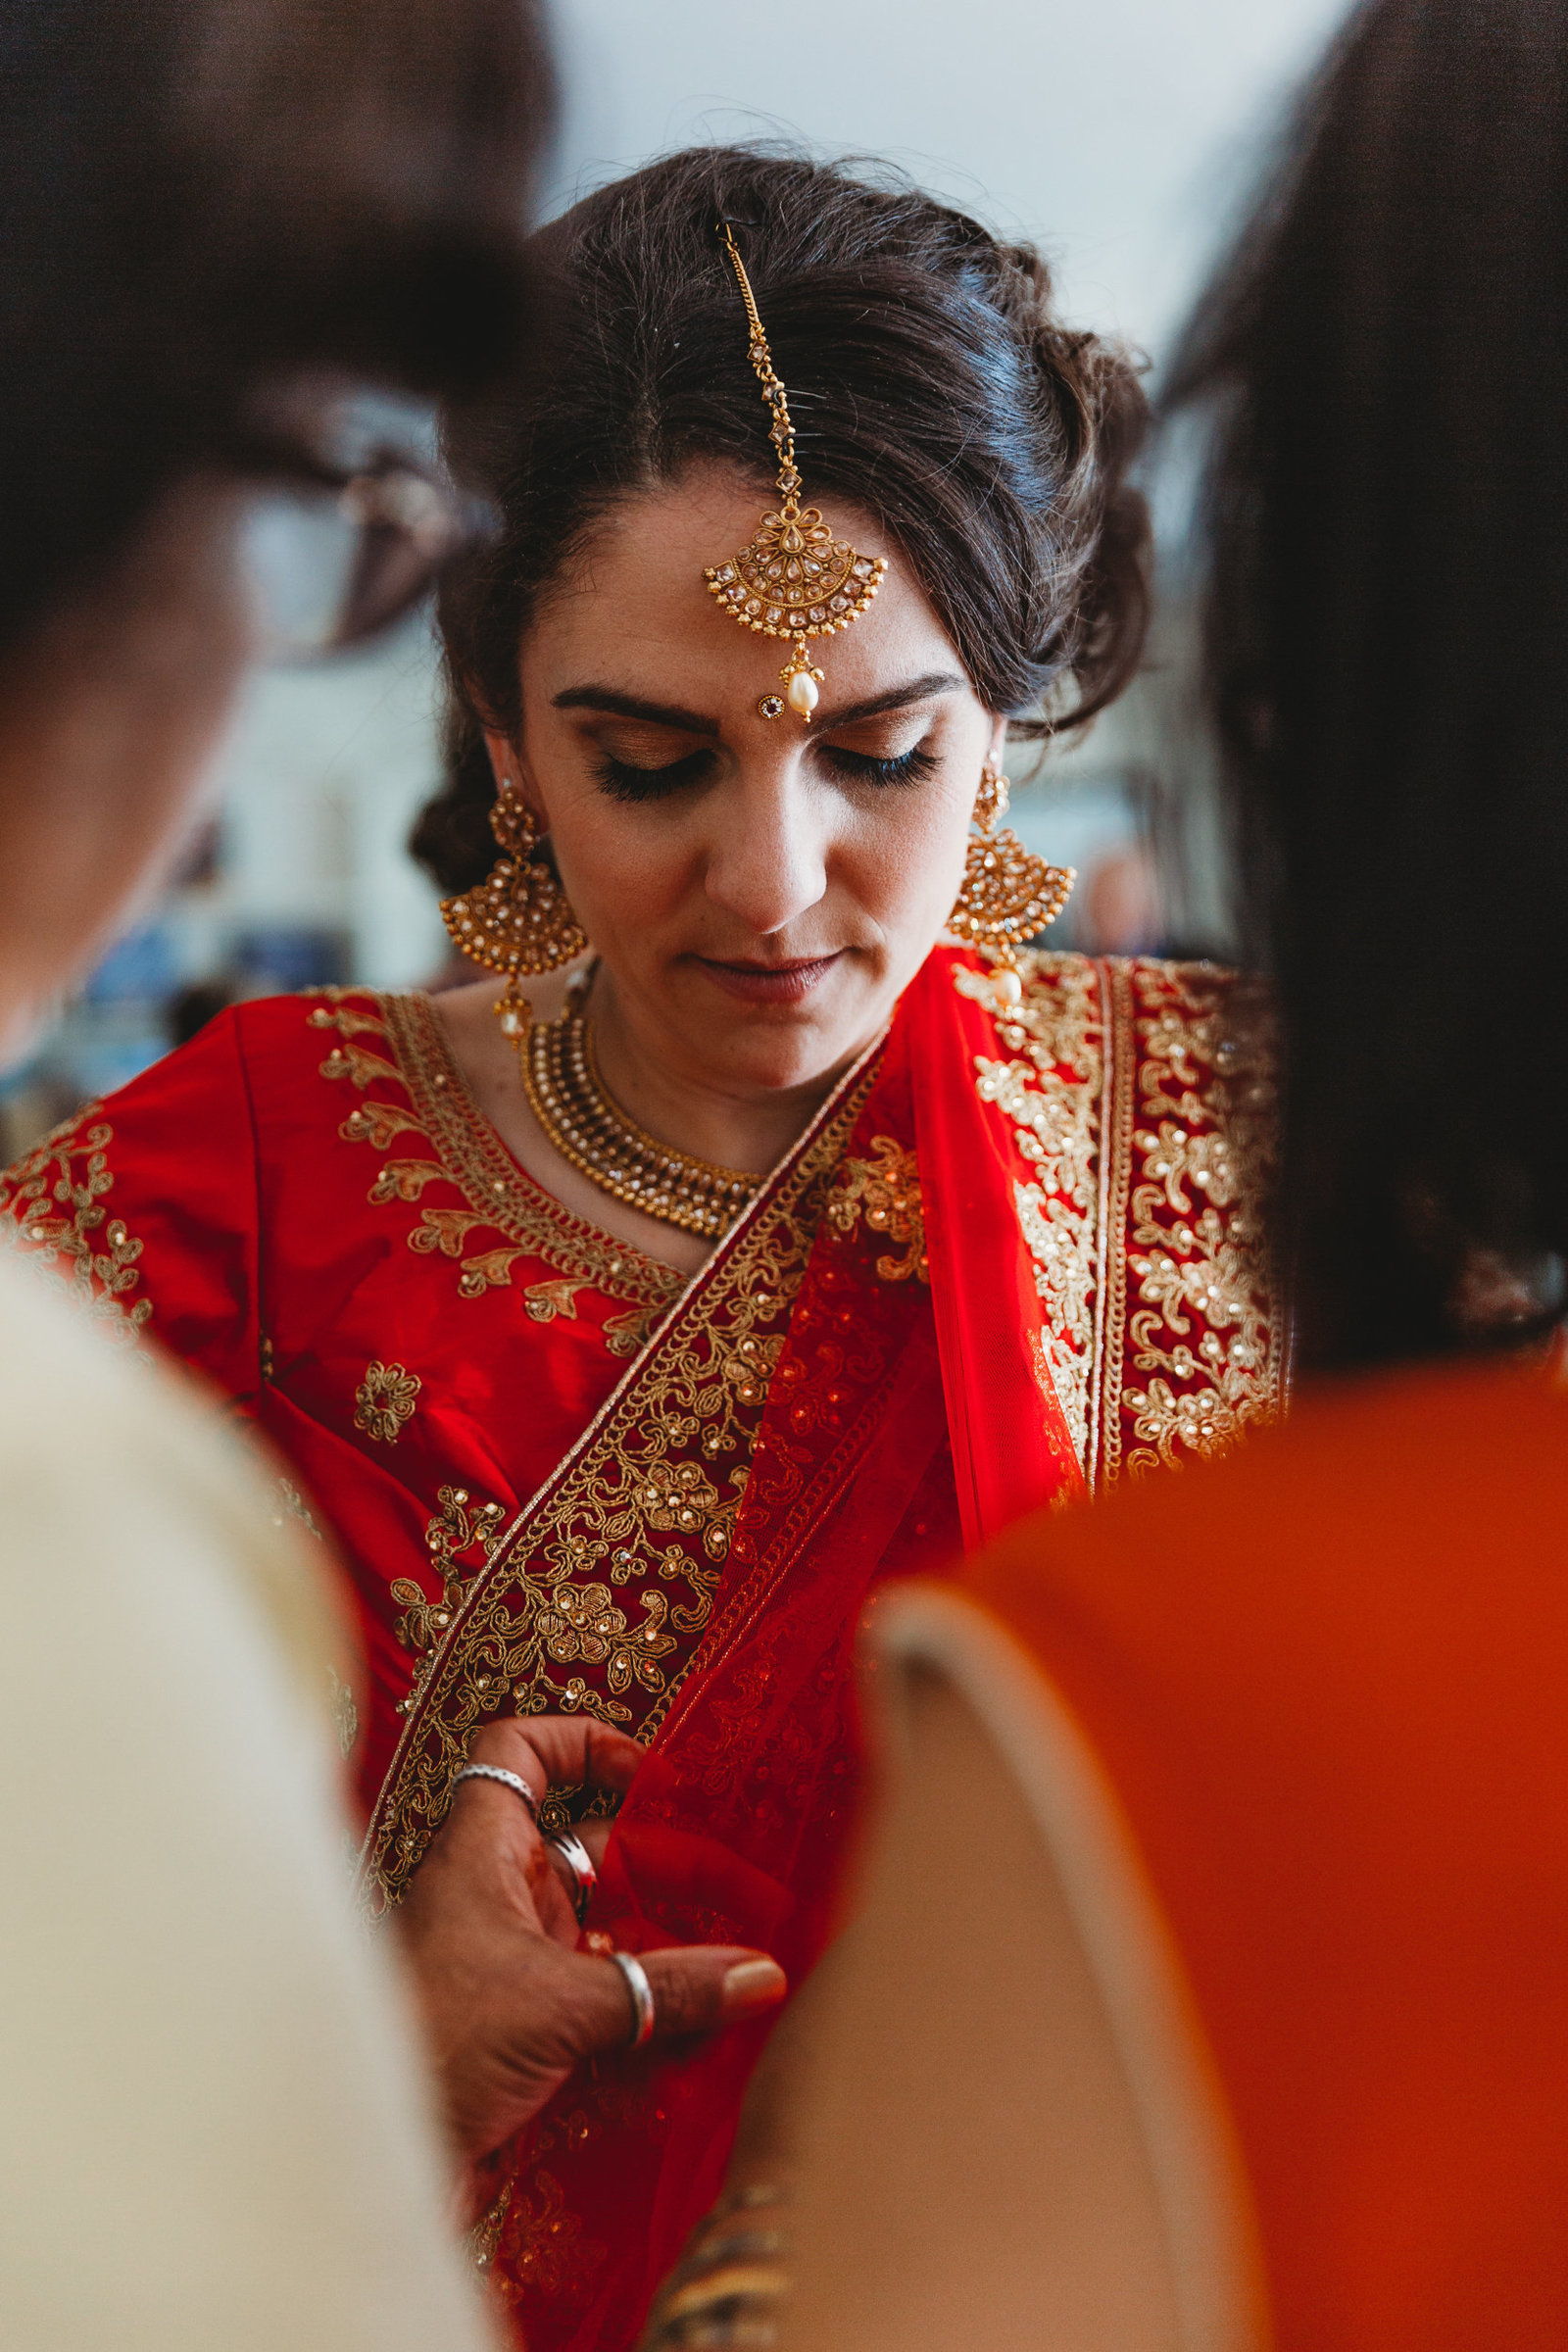 mothers adjust brides indian wedding robes before ceremony in massachusetts